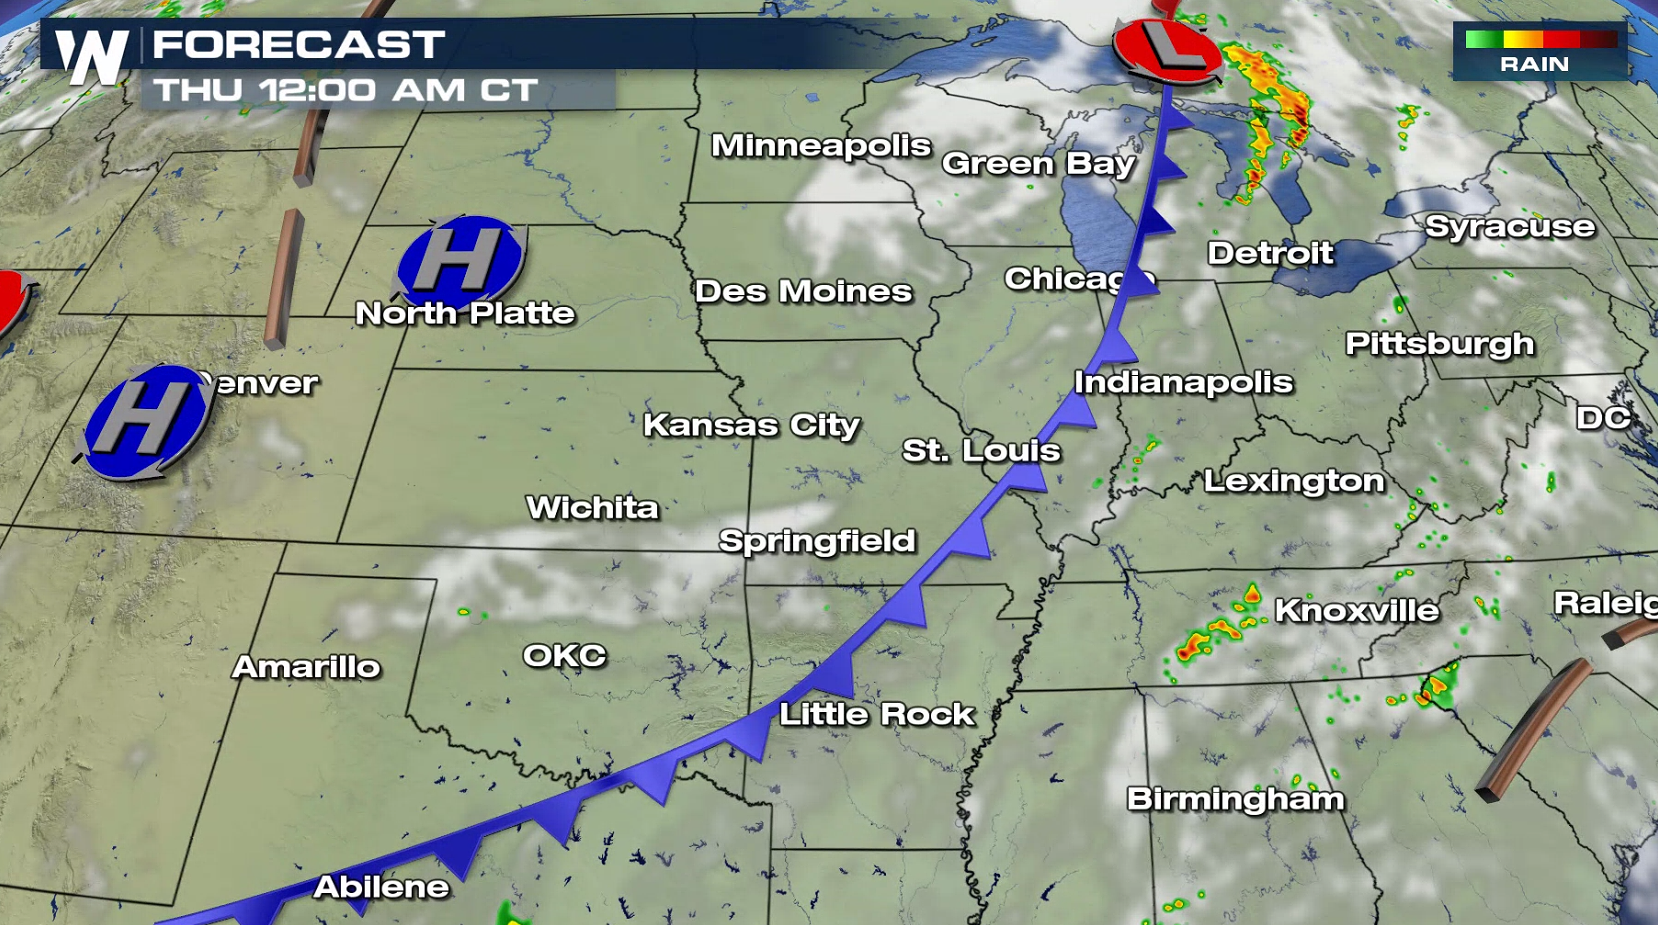 Severe Weather Possible in the Great Lakes and Plains